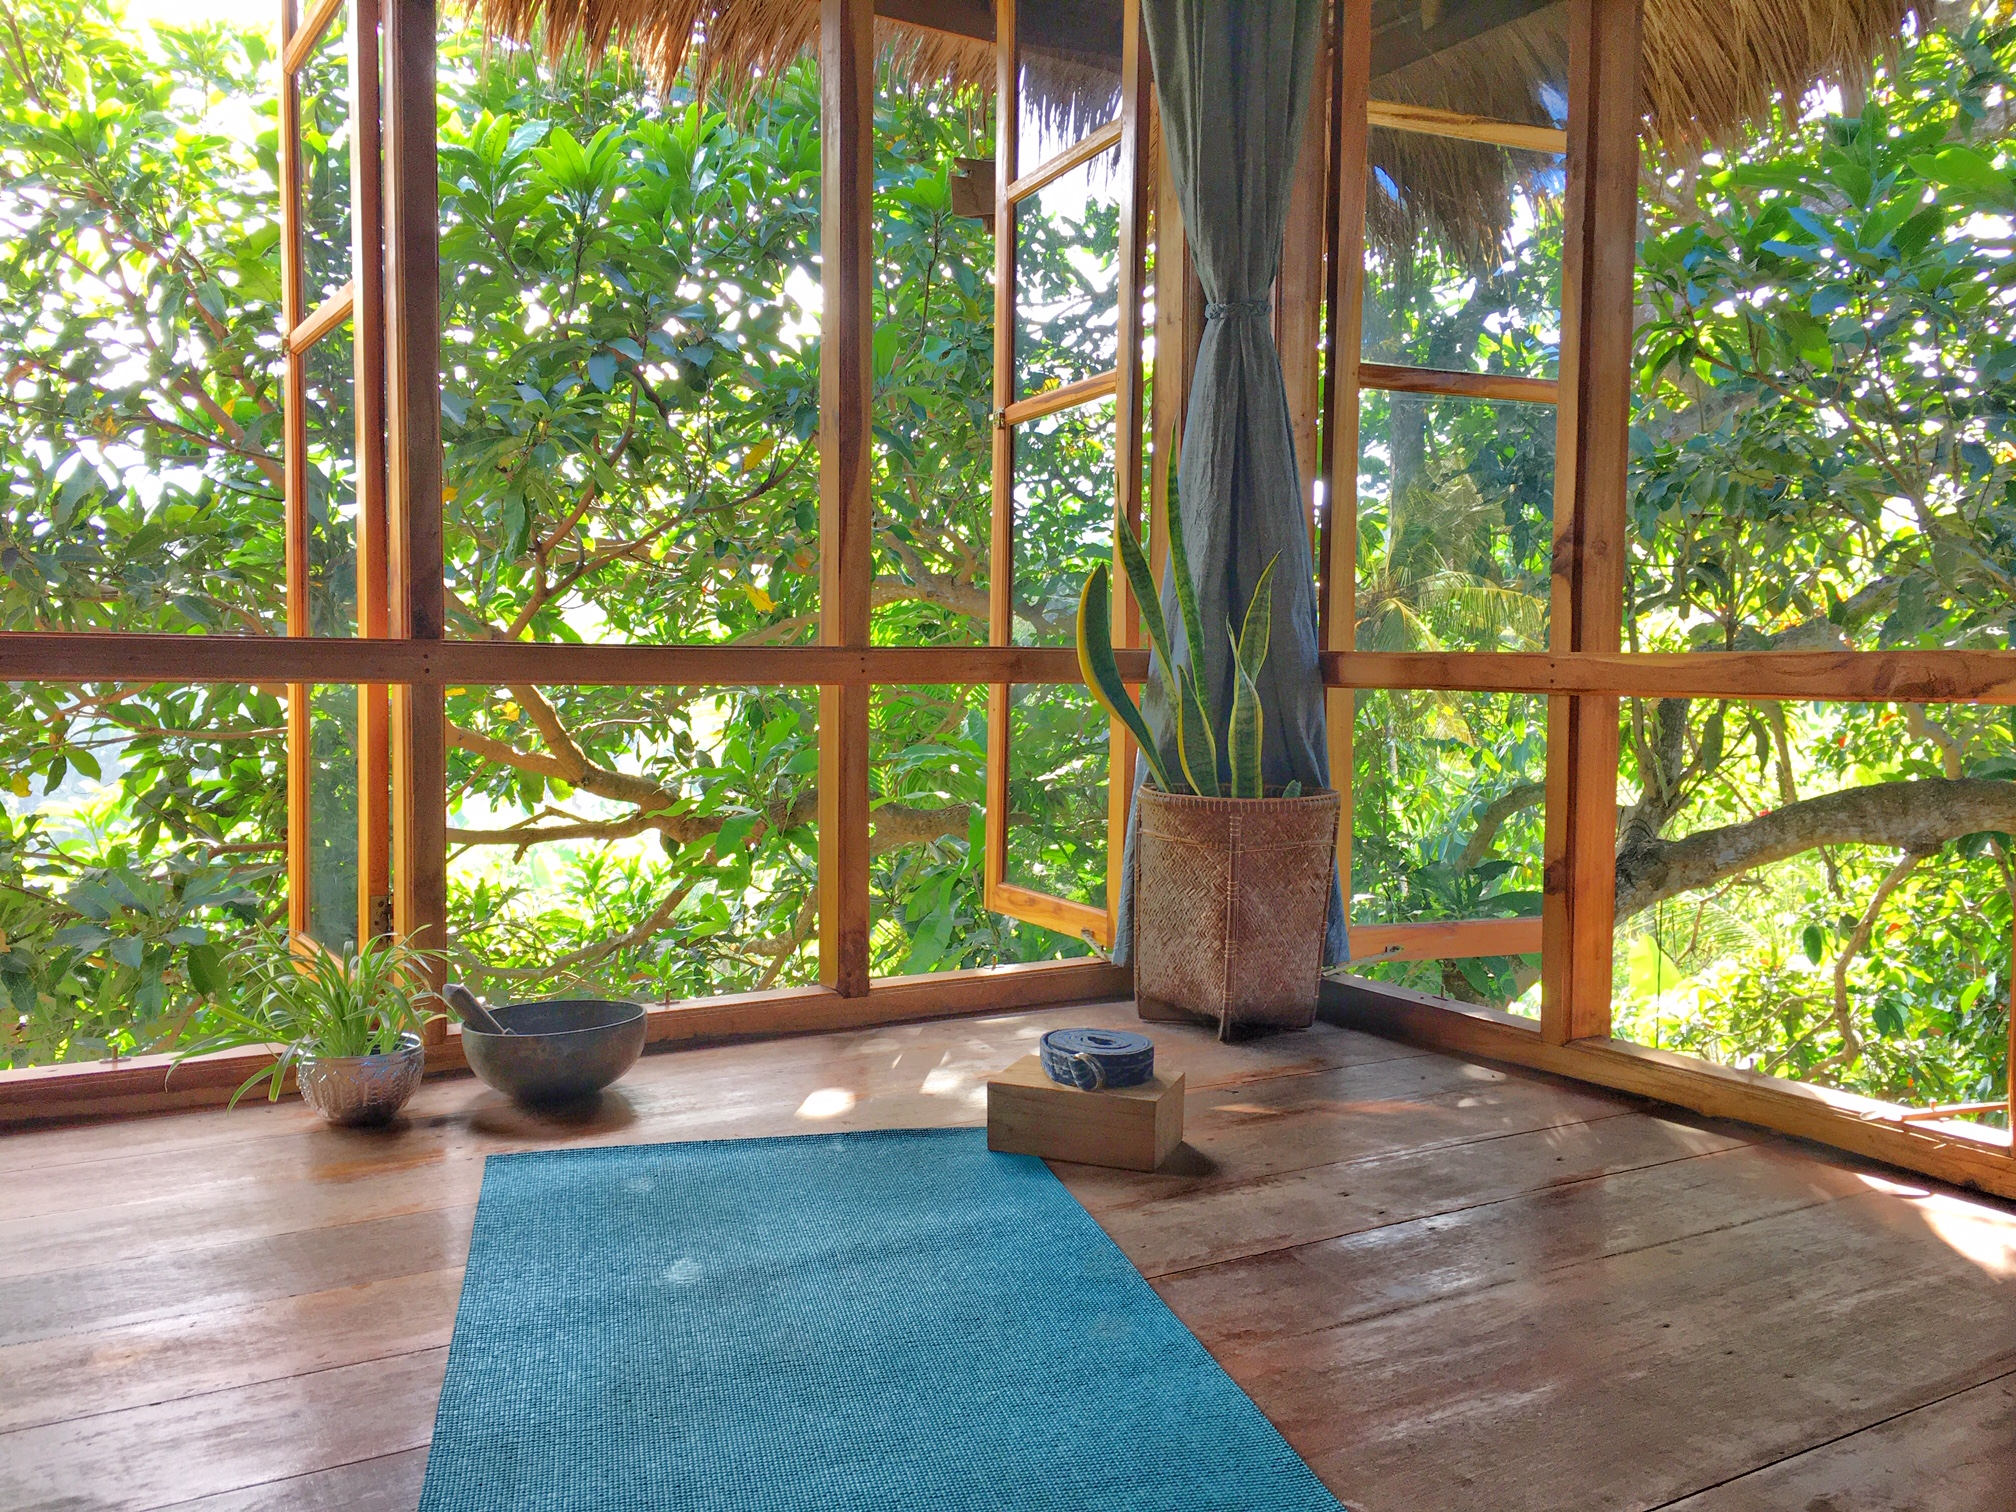 Writers Treehouse yoga